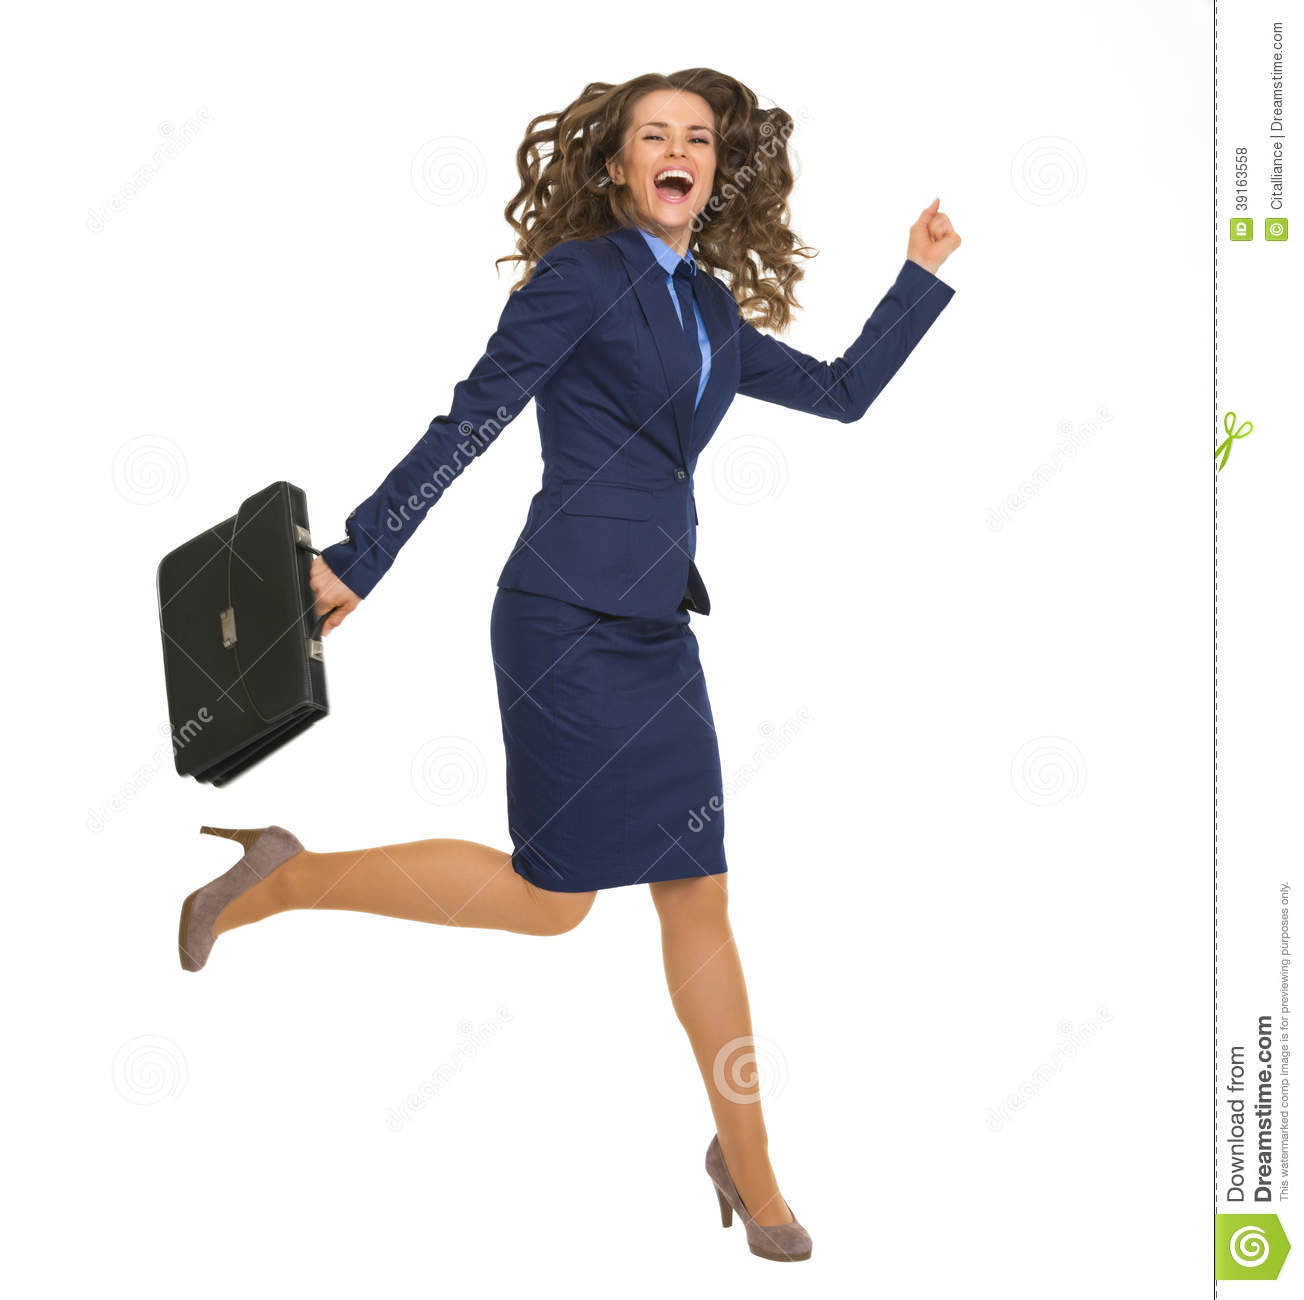 happy-business-woman-jumping-briefcase-i